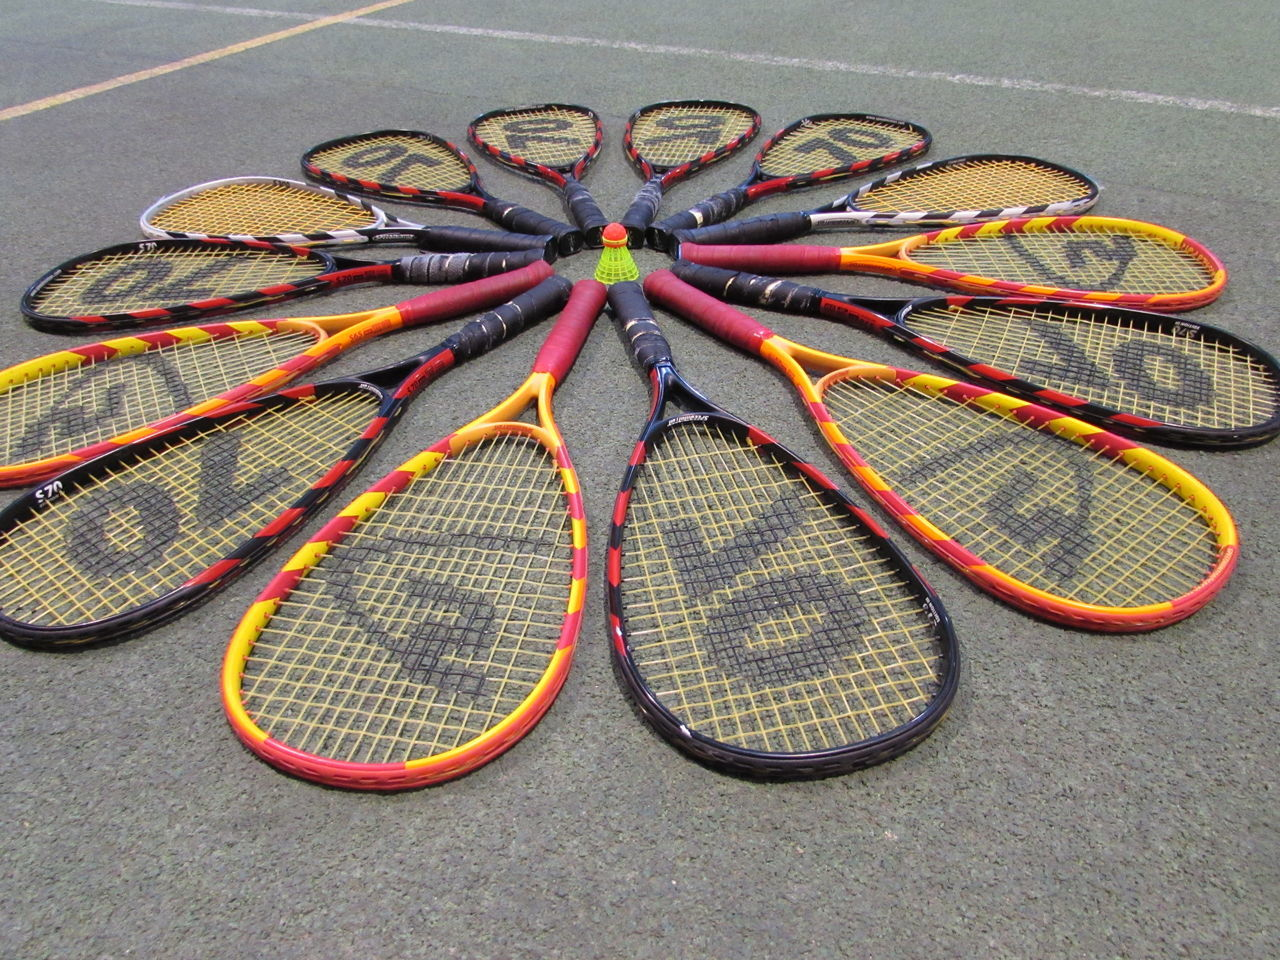 Abundance Close Up Crossminton Day Flower Front View Full Frame Full Length Holding Individuality Large Group Of Objects Looking One Person Playing Rackets Side View Speedminton Speedminton Training Sport Sports Standing